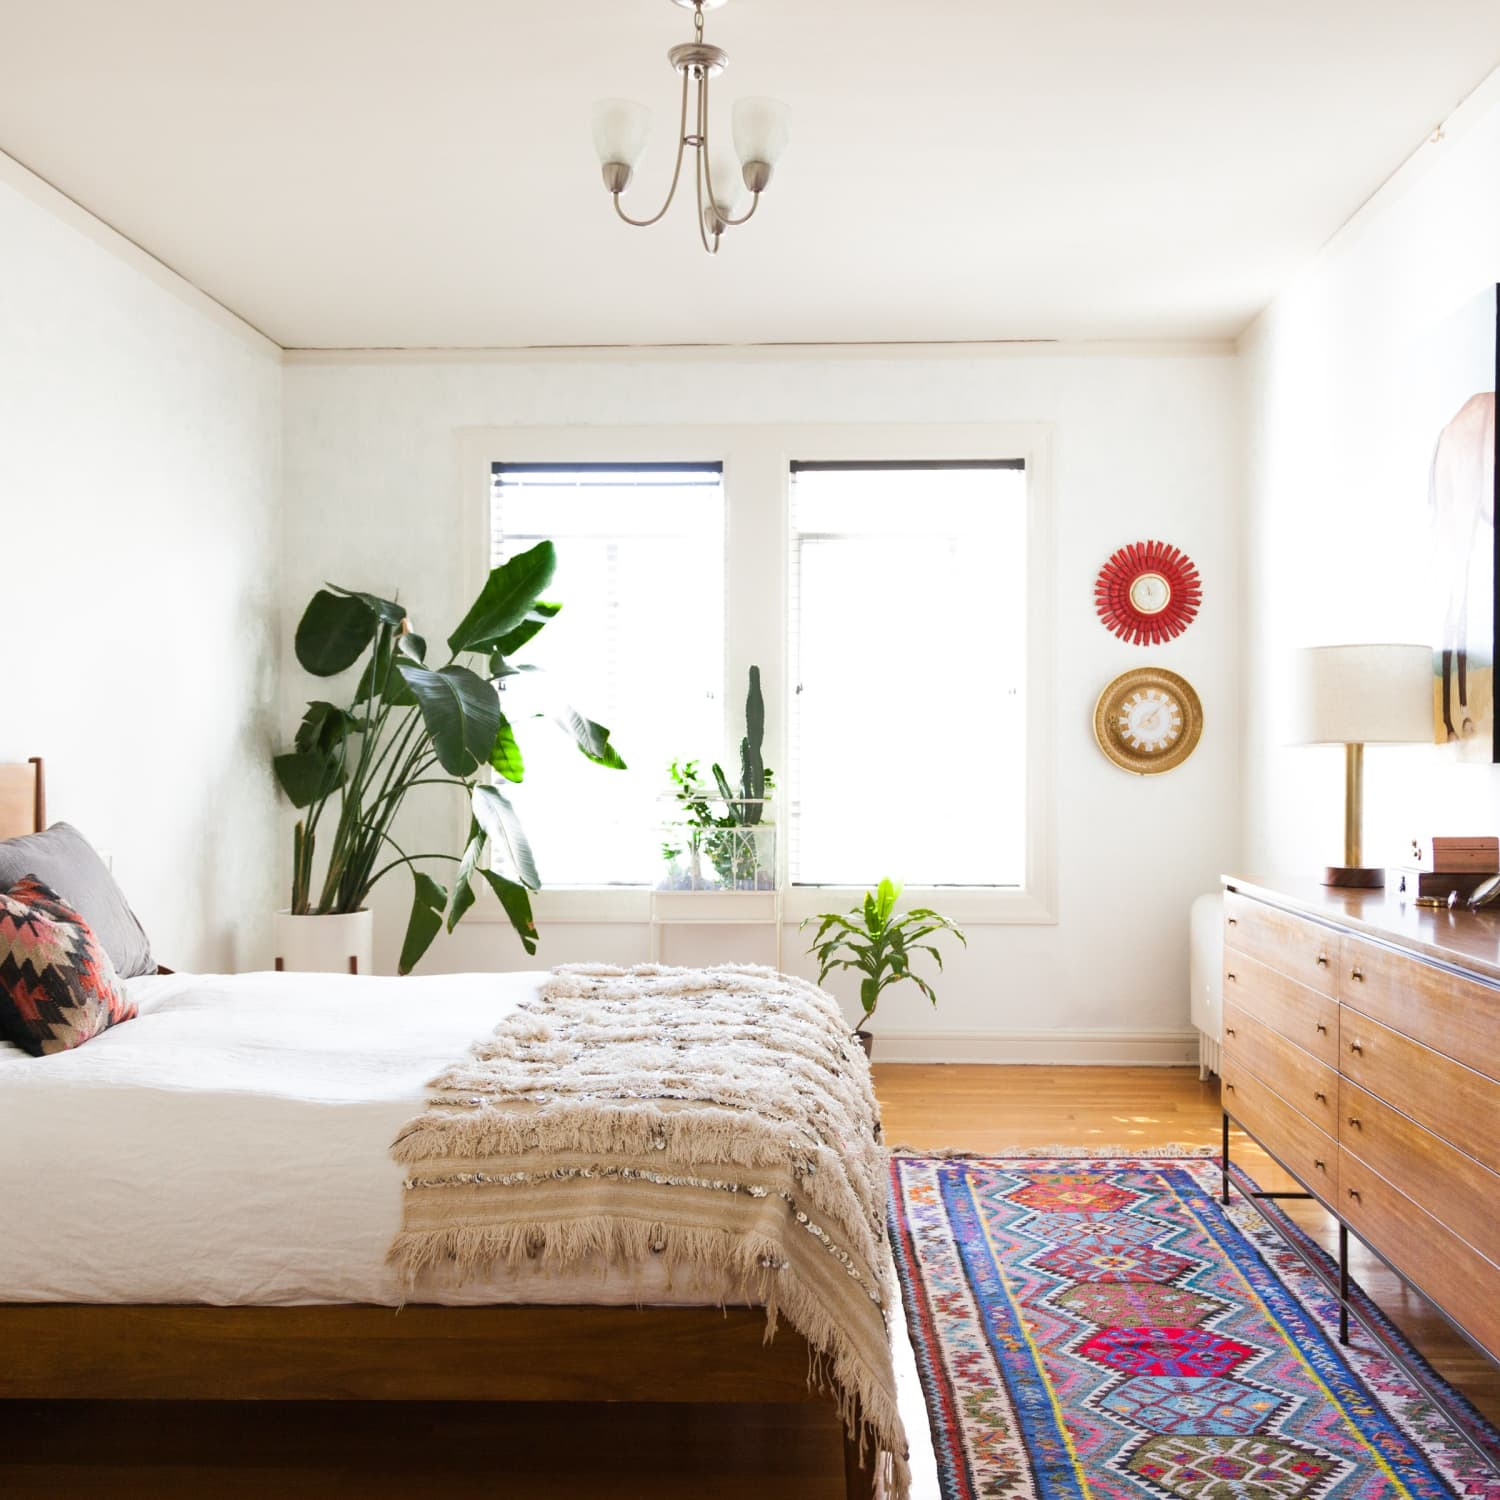 Common Bedroom Design Mistakes We Should Stop Making Apartment Therapy